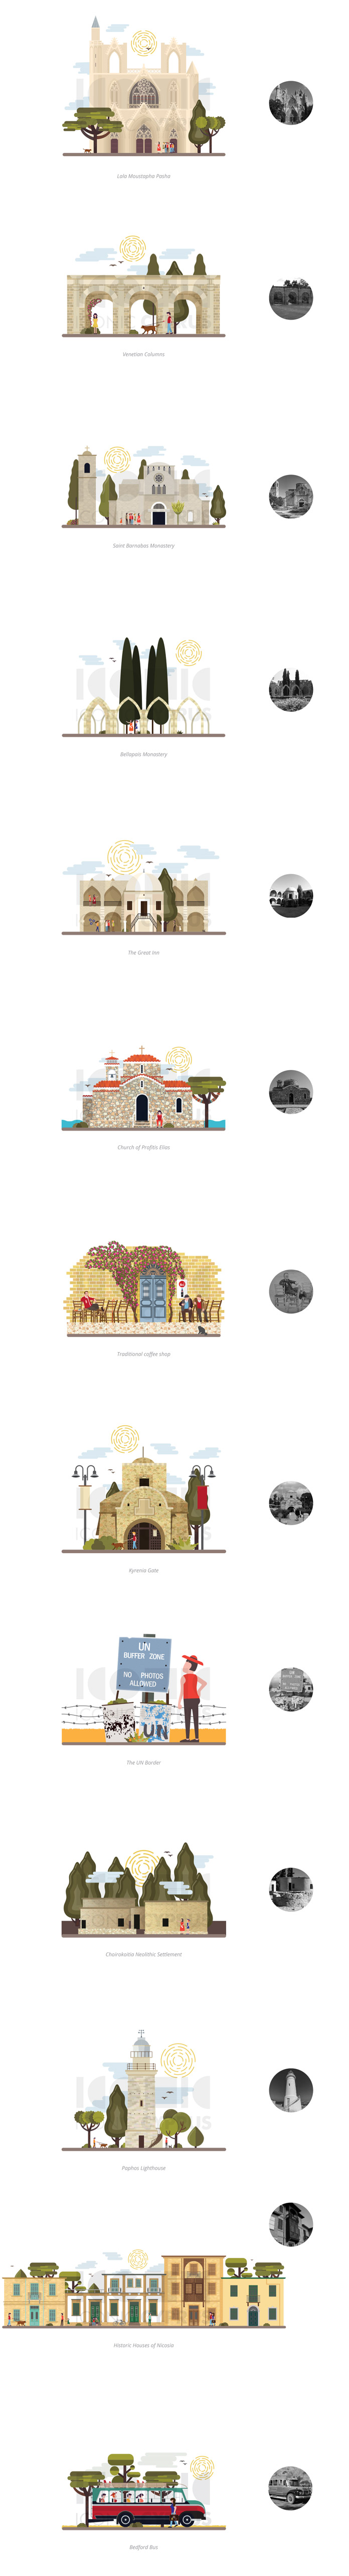 Illustrations of iconic landmarks and tourist attractions in Cyprus.